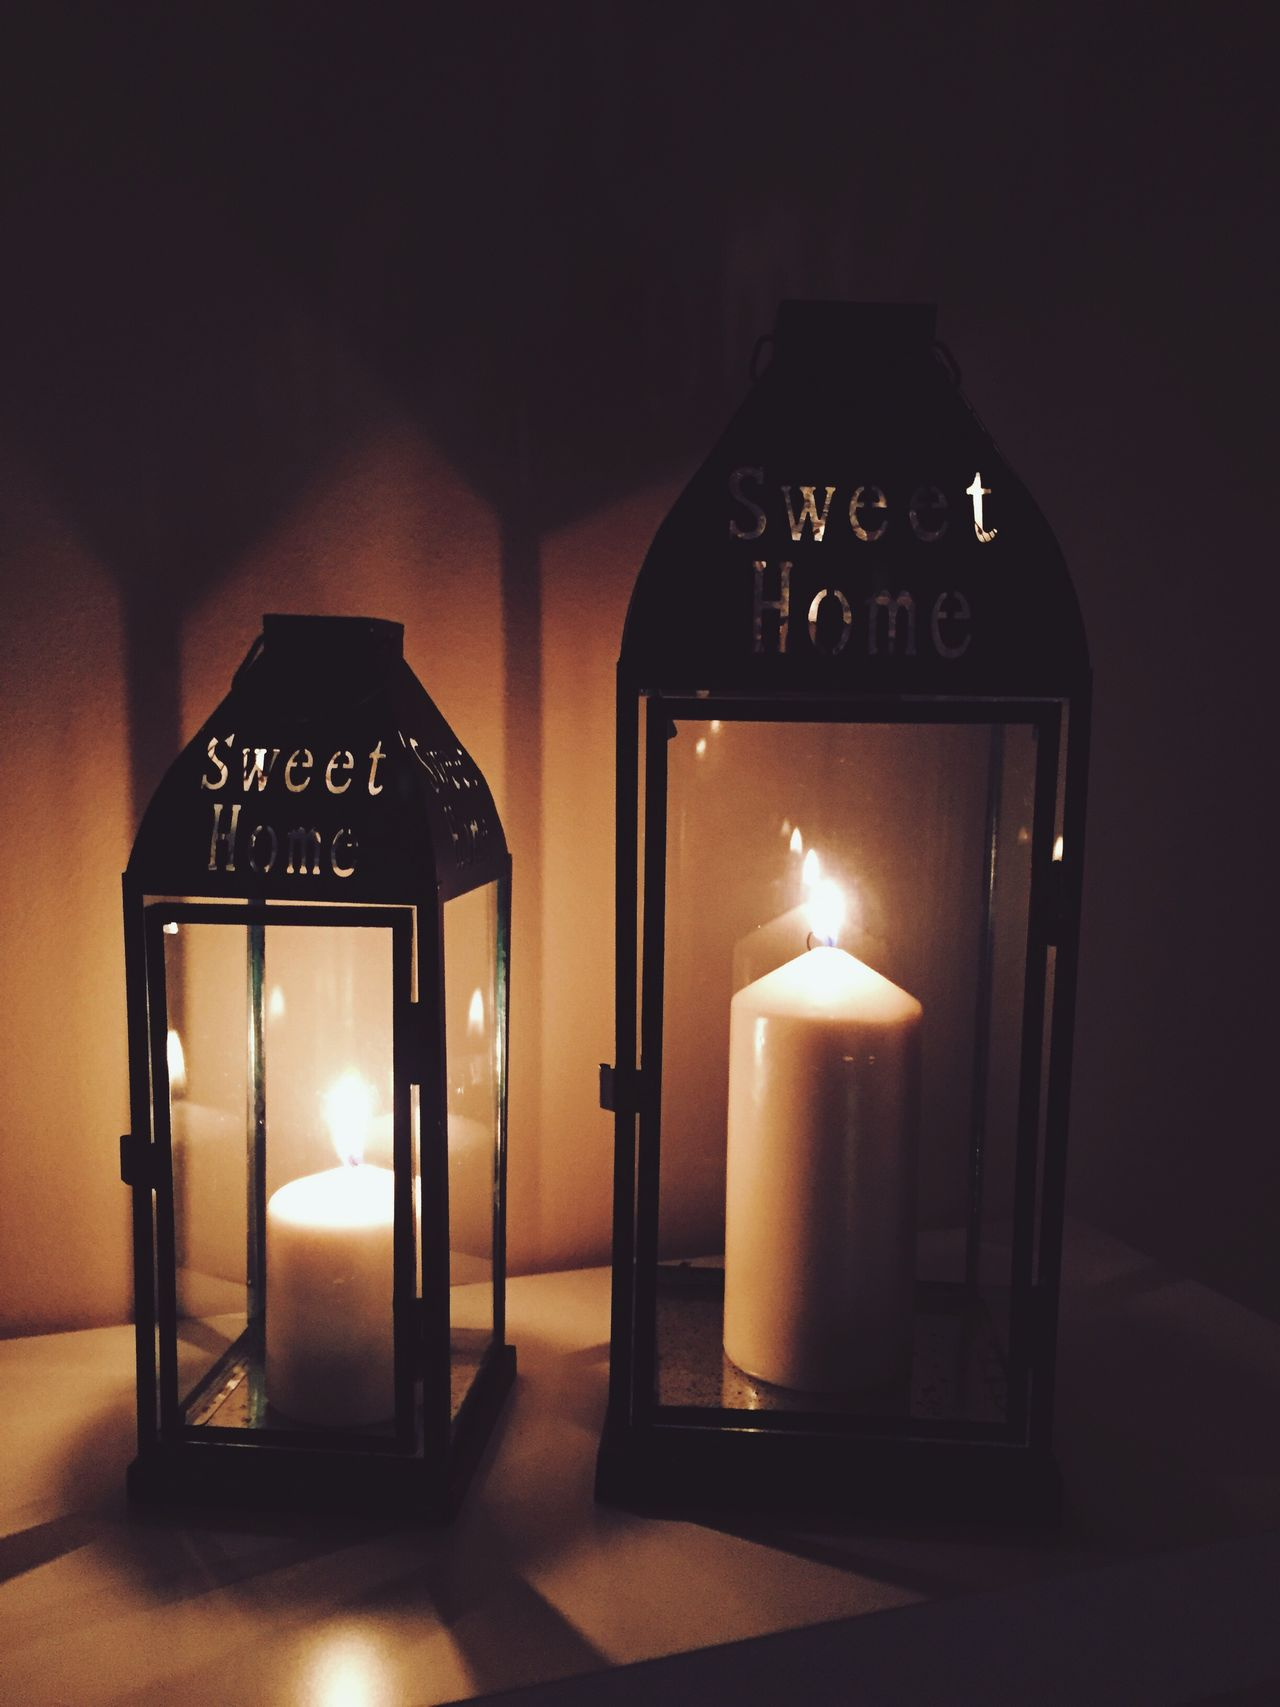 Cozy at home... Anything else needed ✨🏡🛋✨ Illuminated Candle Home Interior IPhoneography Throughmyeyes Night Light And Shadow Cozy Place Cozy At Home Lantern Candles Home Sweet Home